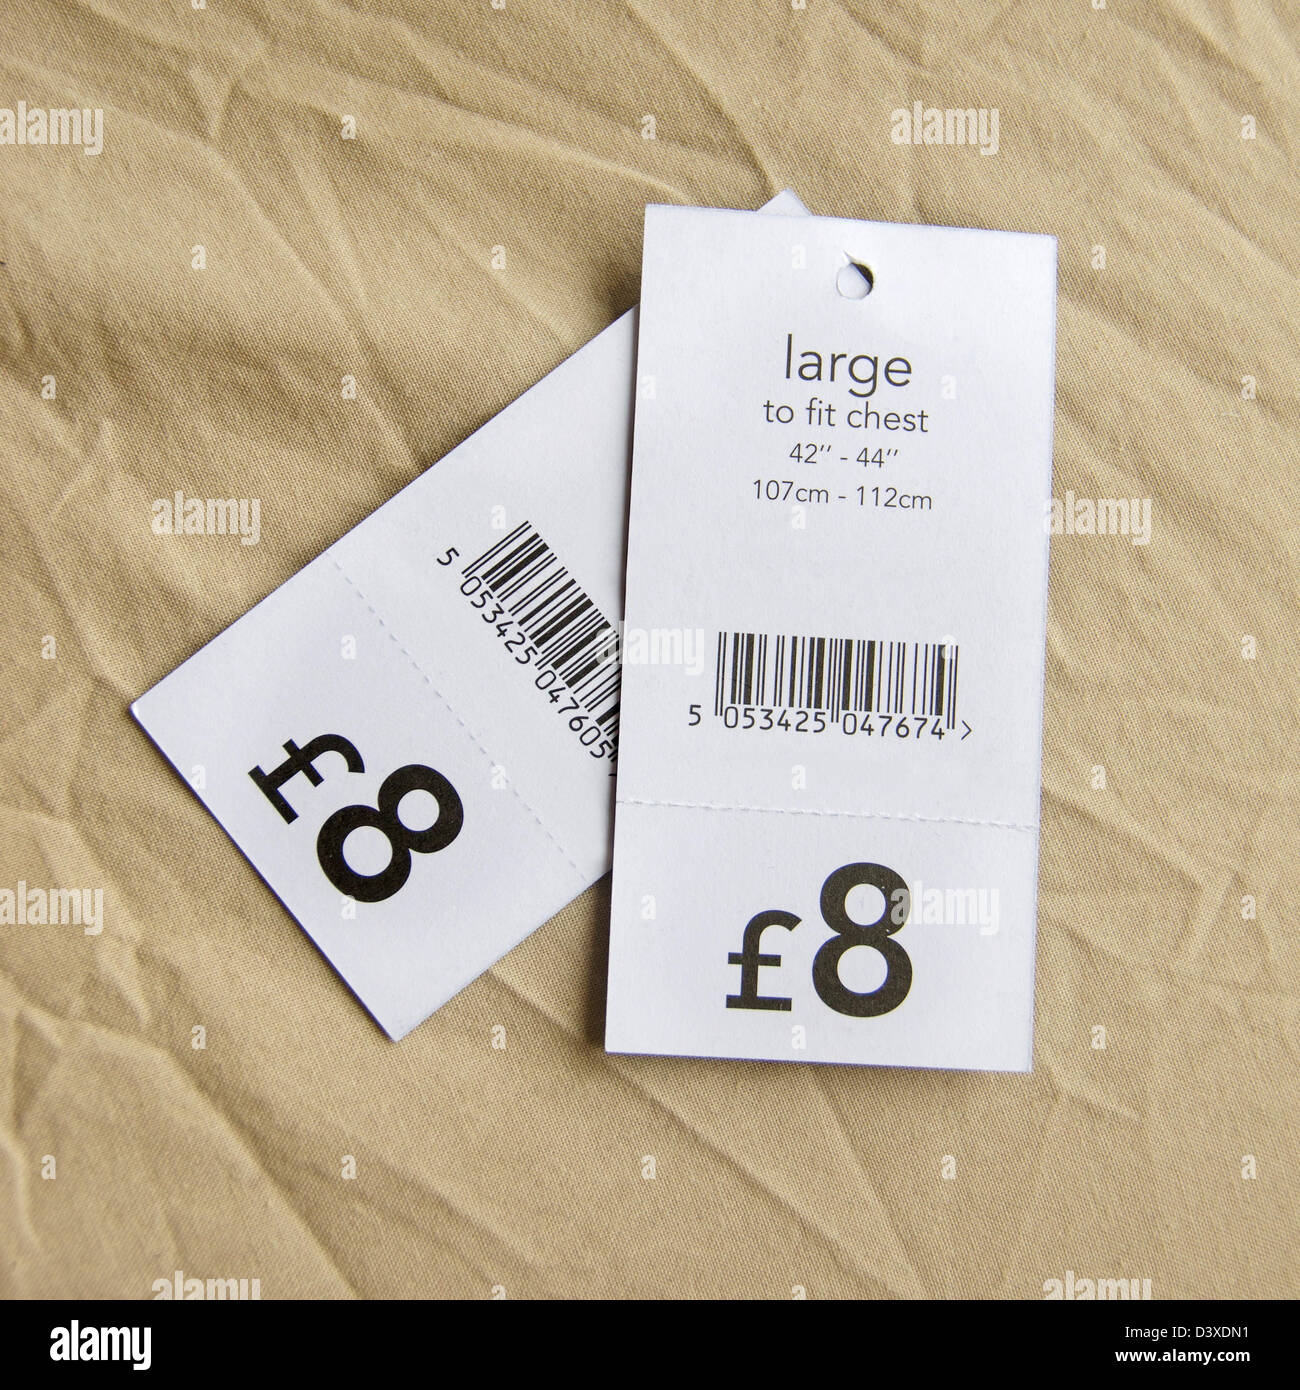 Pound price tags for upper body clothes, England, United ...